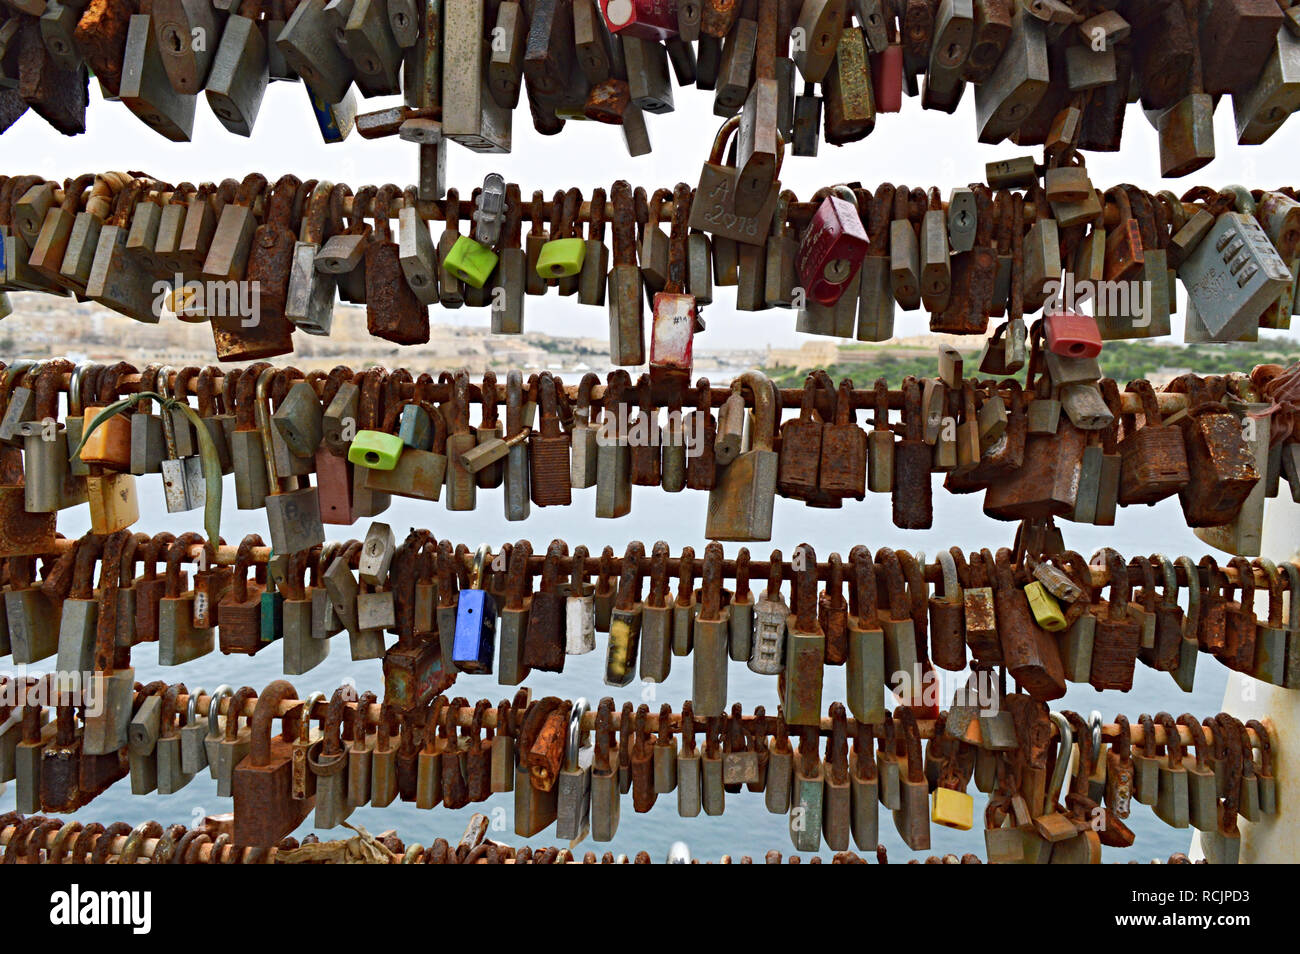 Padlocks on the footbridge at Silema Malta - Stock Image